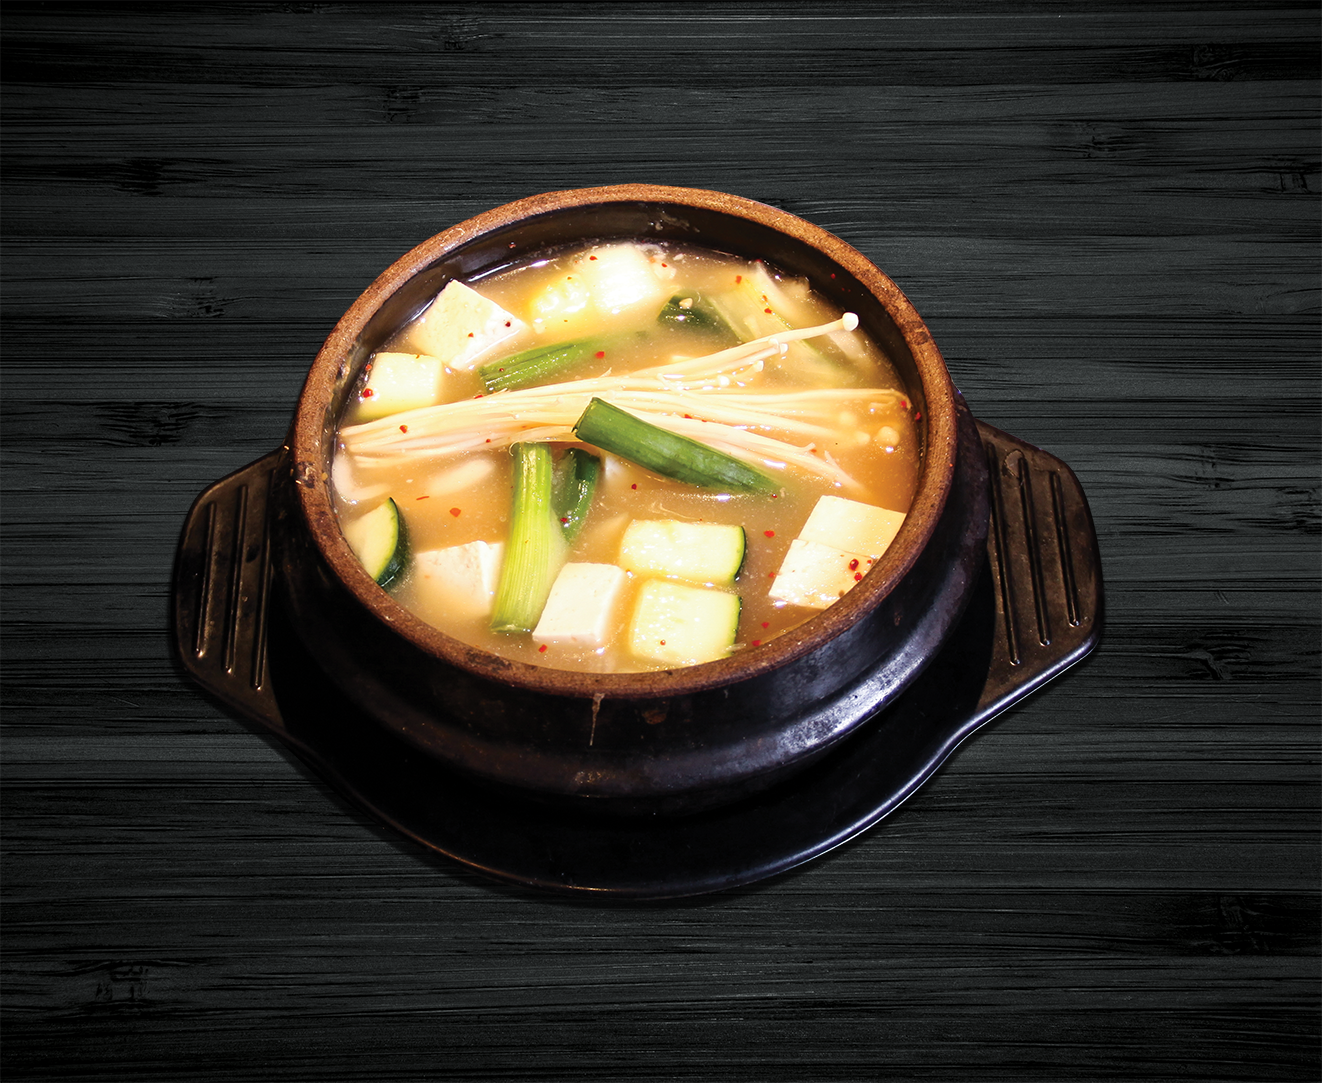 Soybean Paste Stew